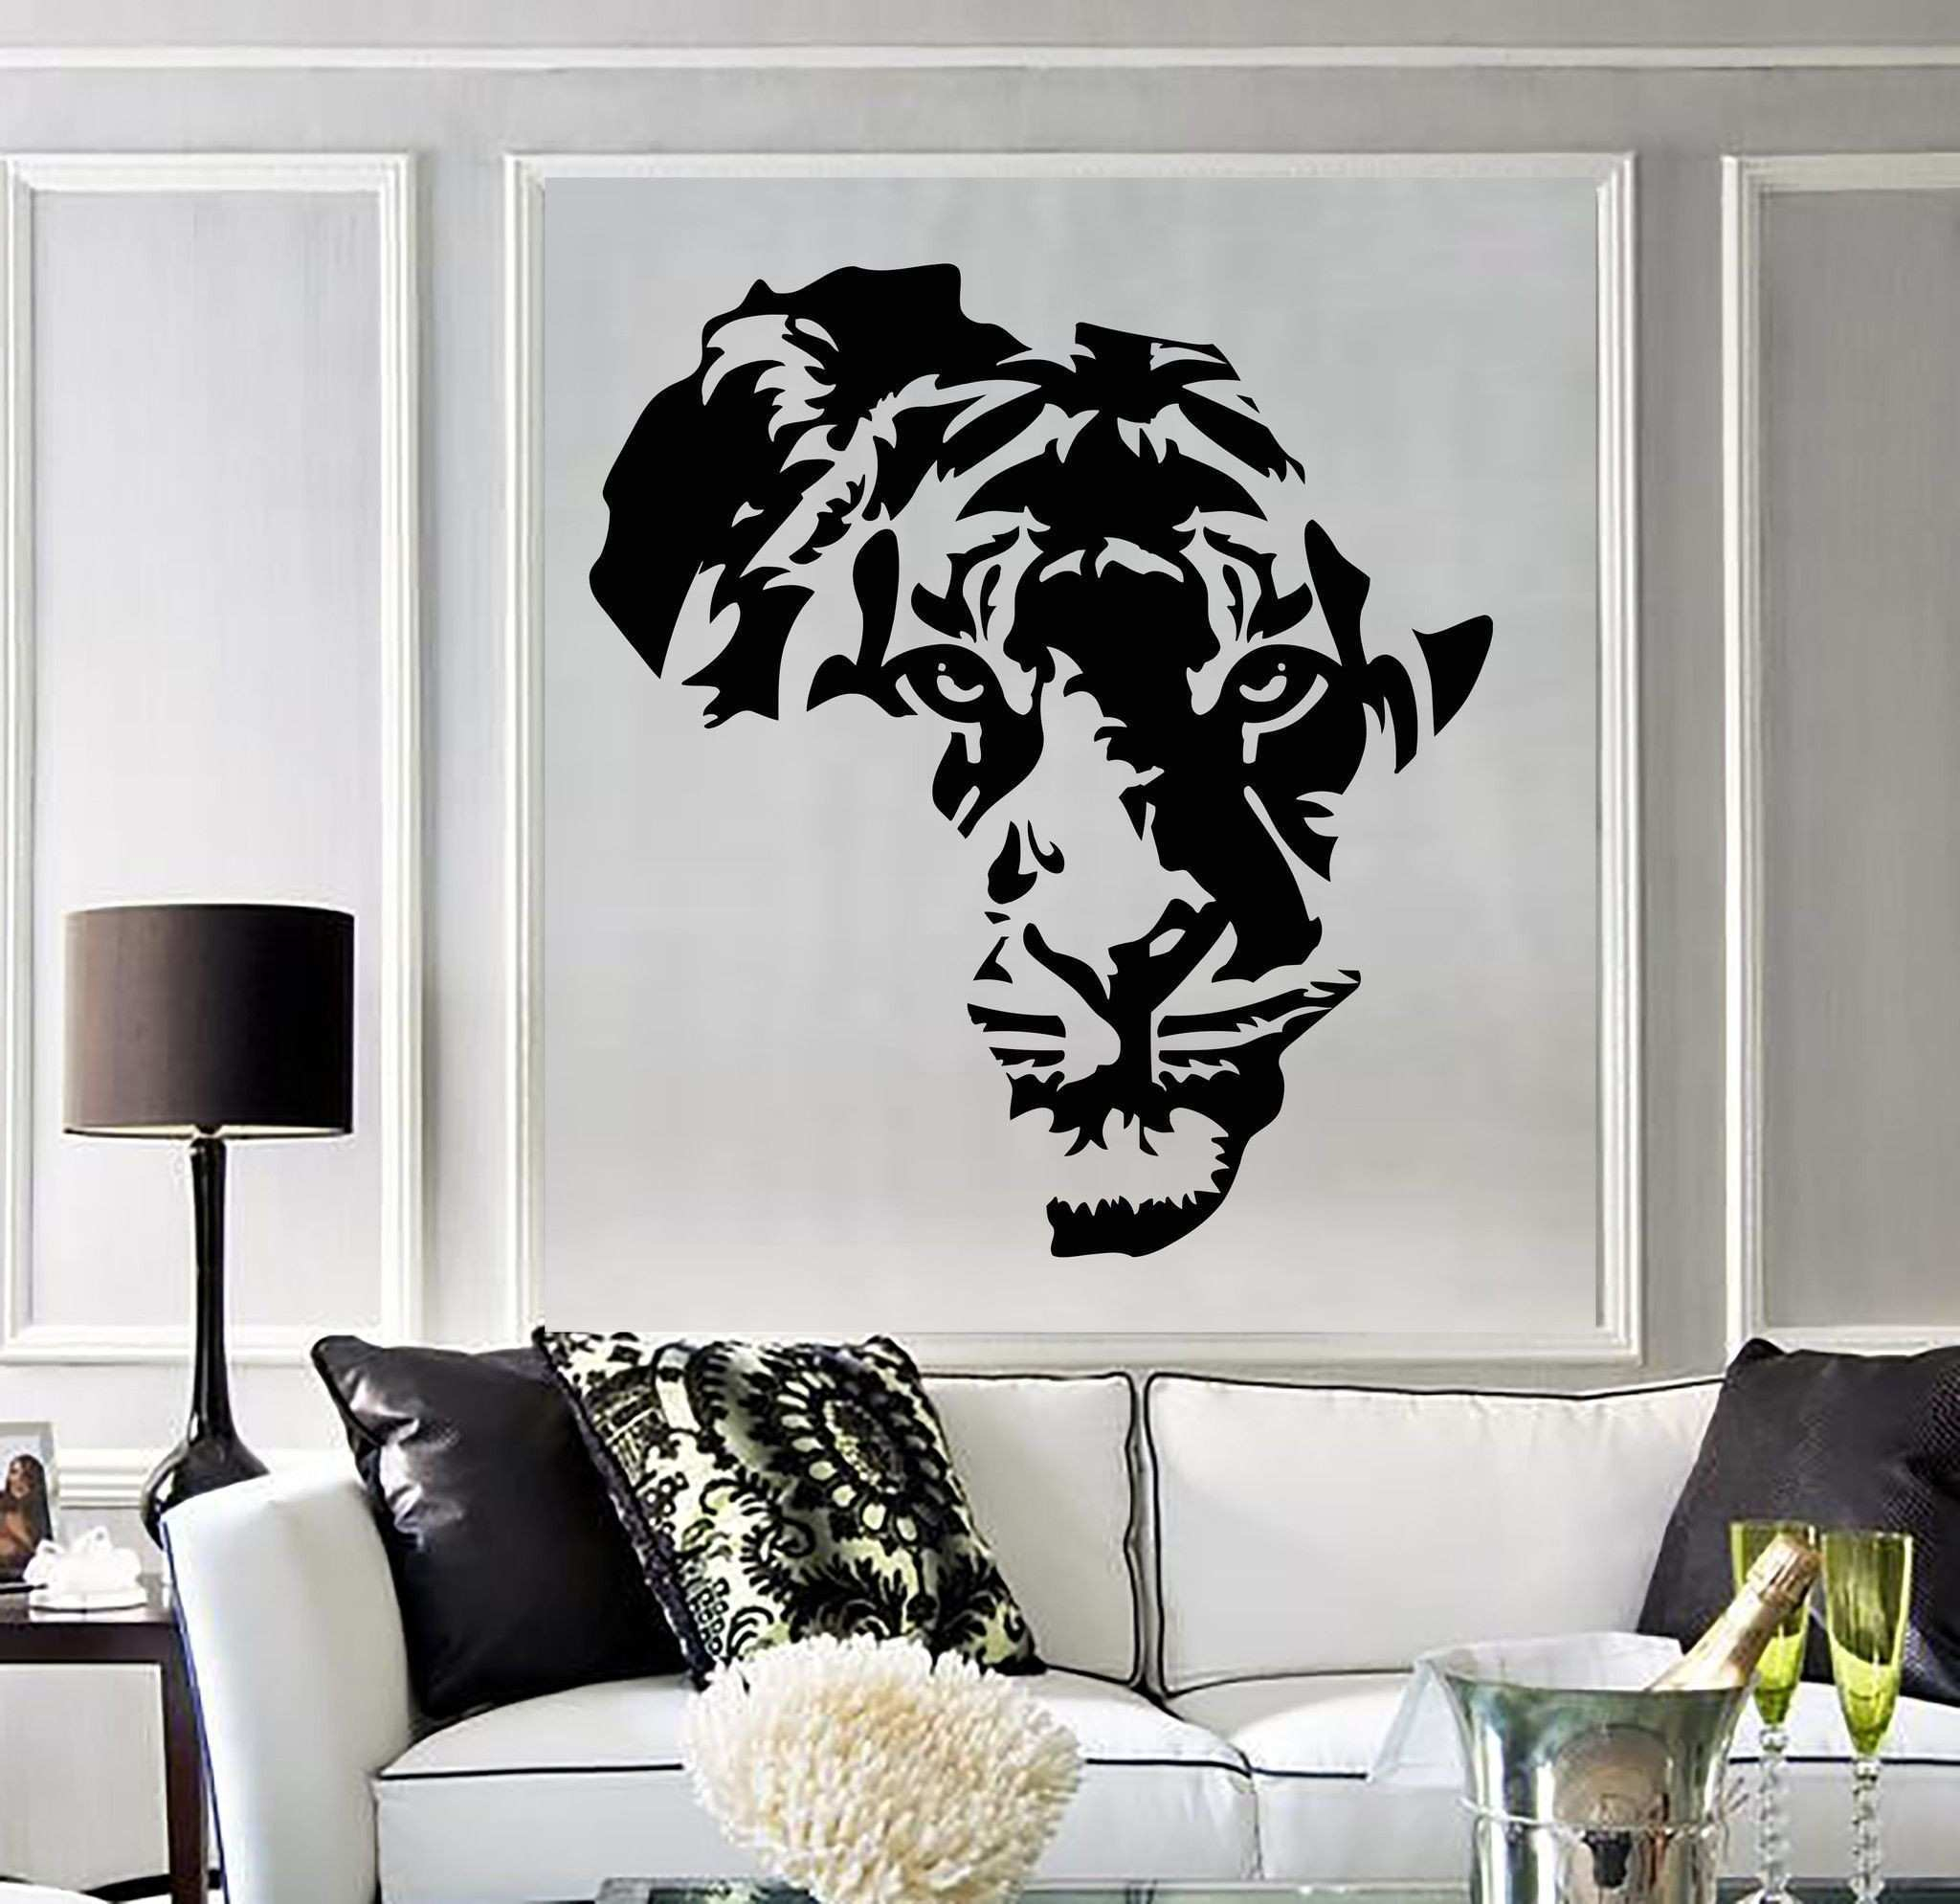 Vinyl 4 Decor Inspirational Vinyl Decal Tiger Animal Africa Map Kids